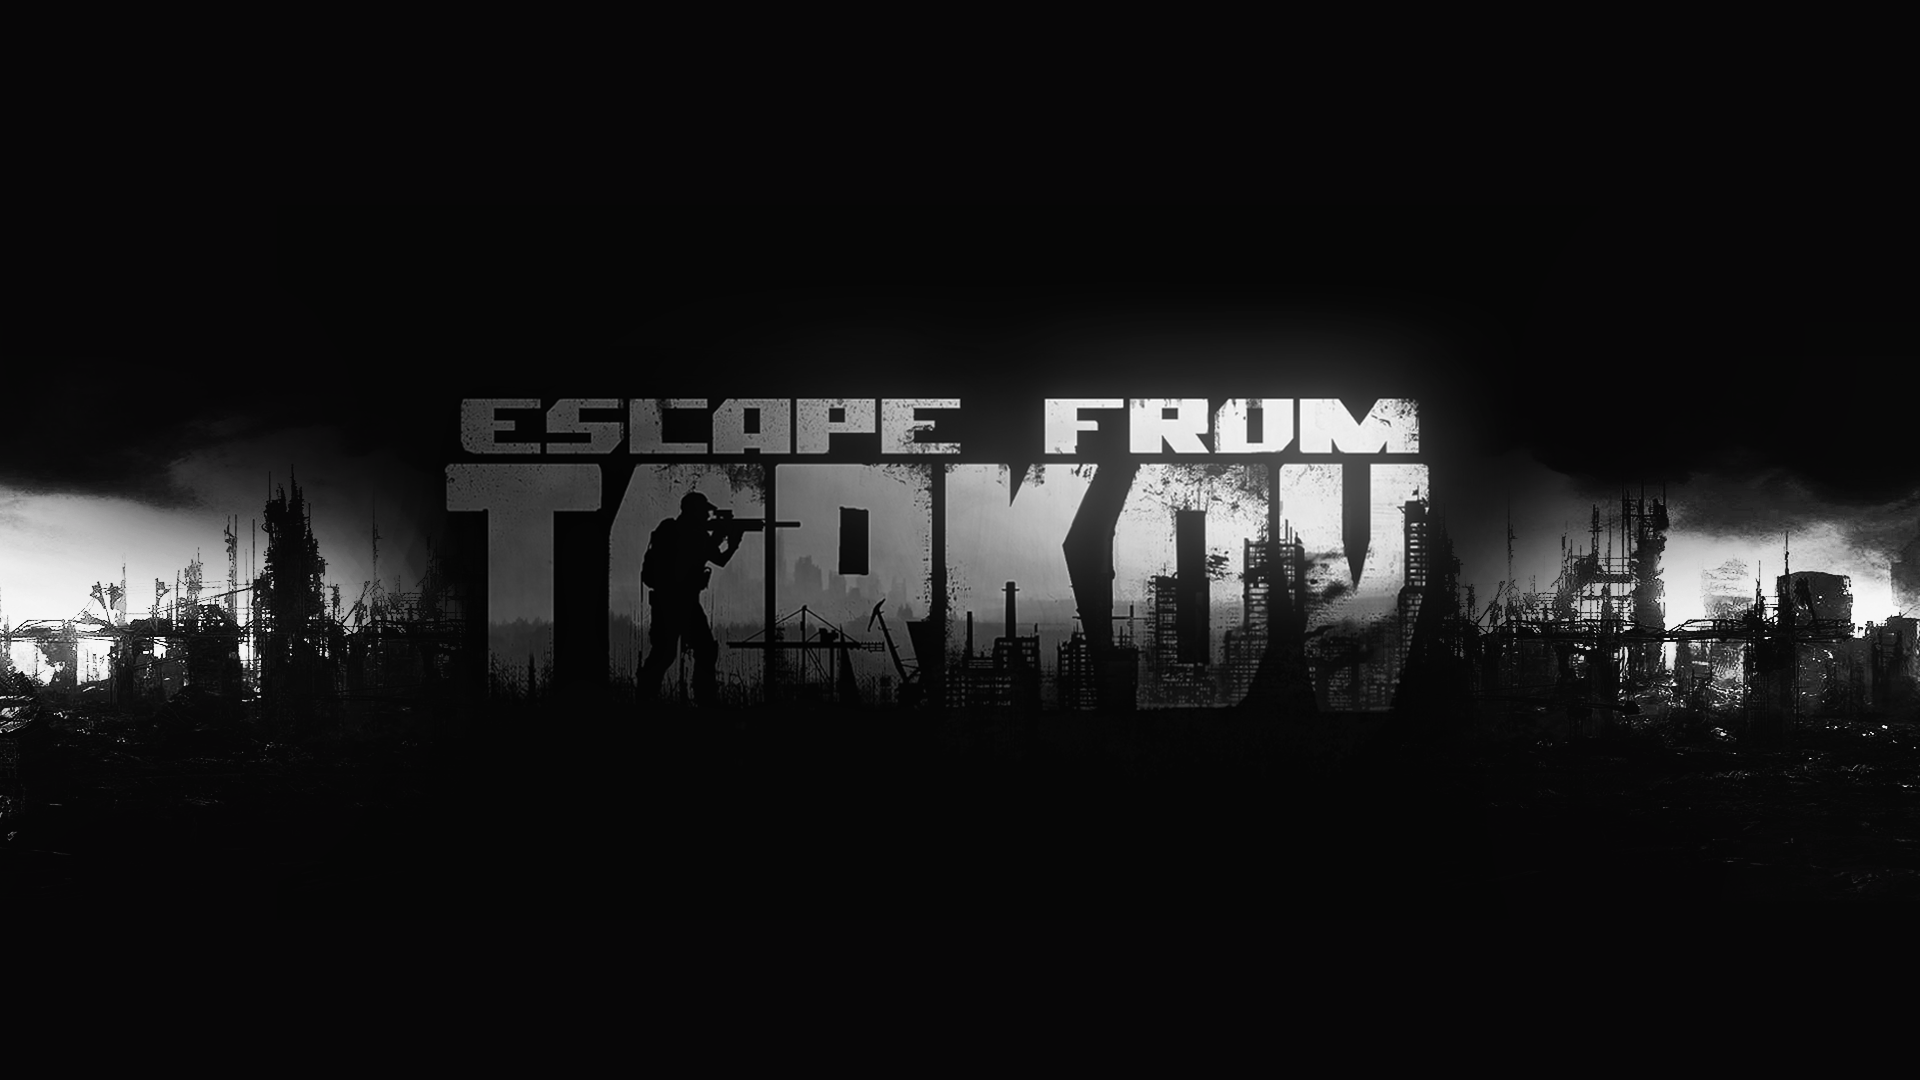 Escape-From-Tarkov-Custom-1920x1080-Need-iPhone-S-Plus-Background-for-wallpaper-wp3605391